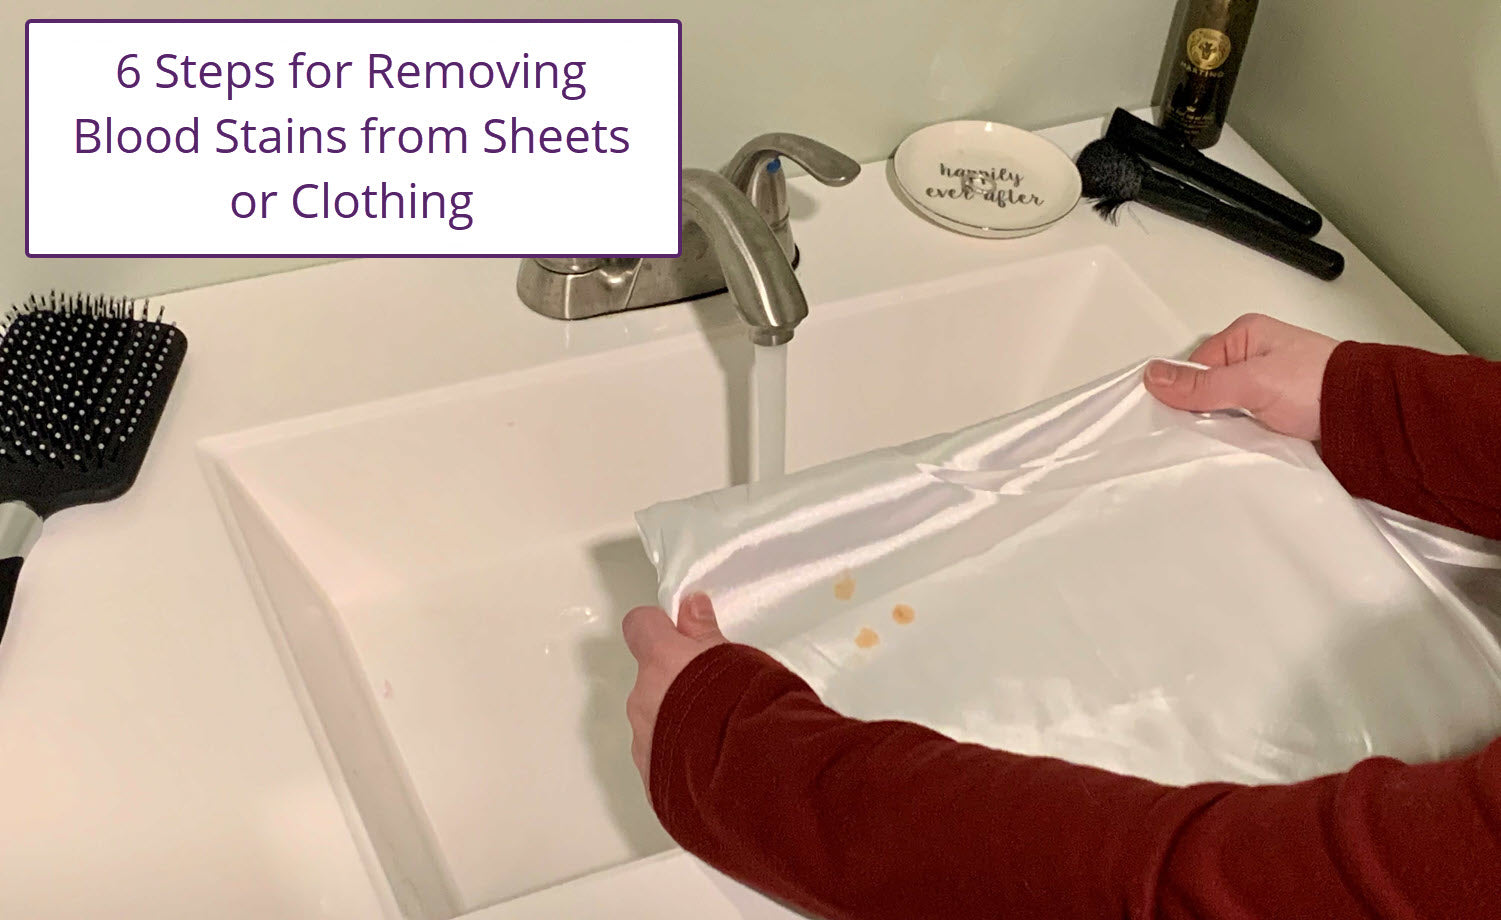 How-To Remove Blood Stains from bedding or pajamas